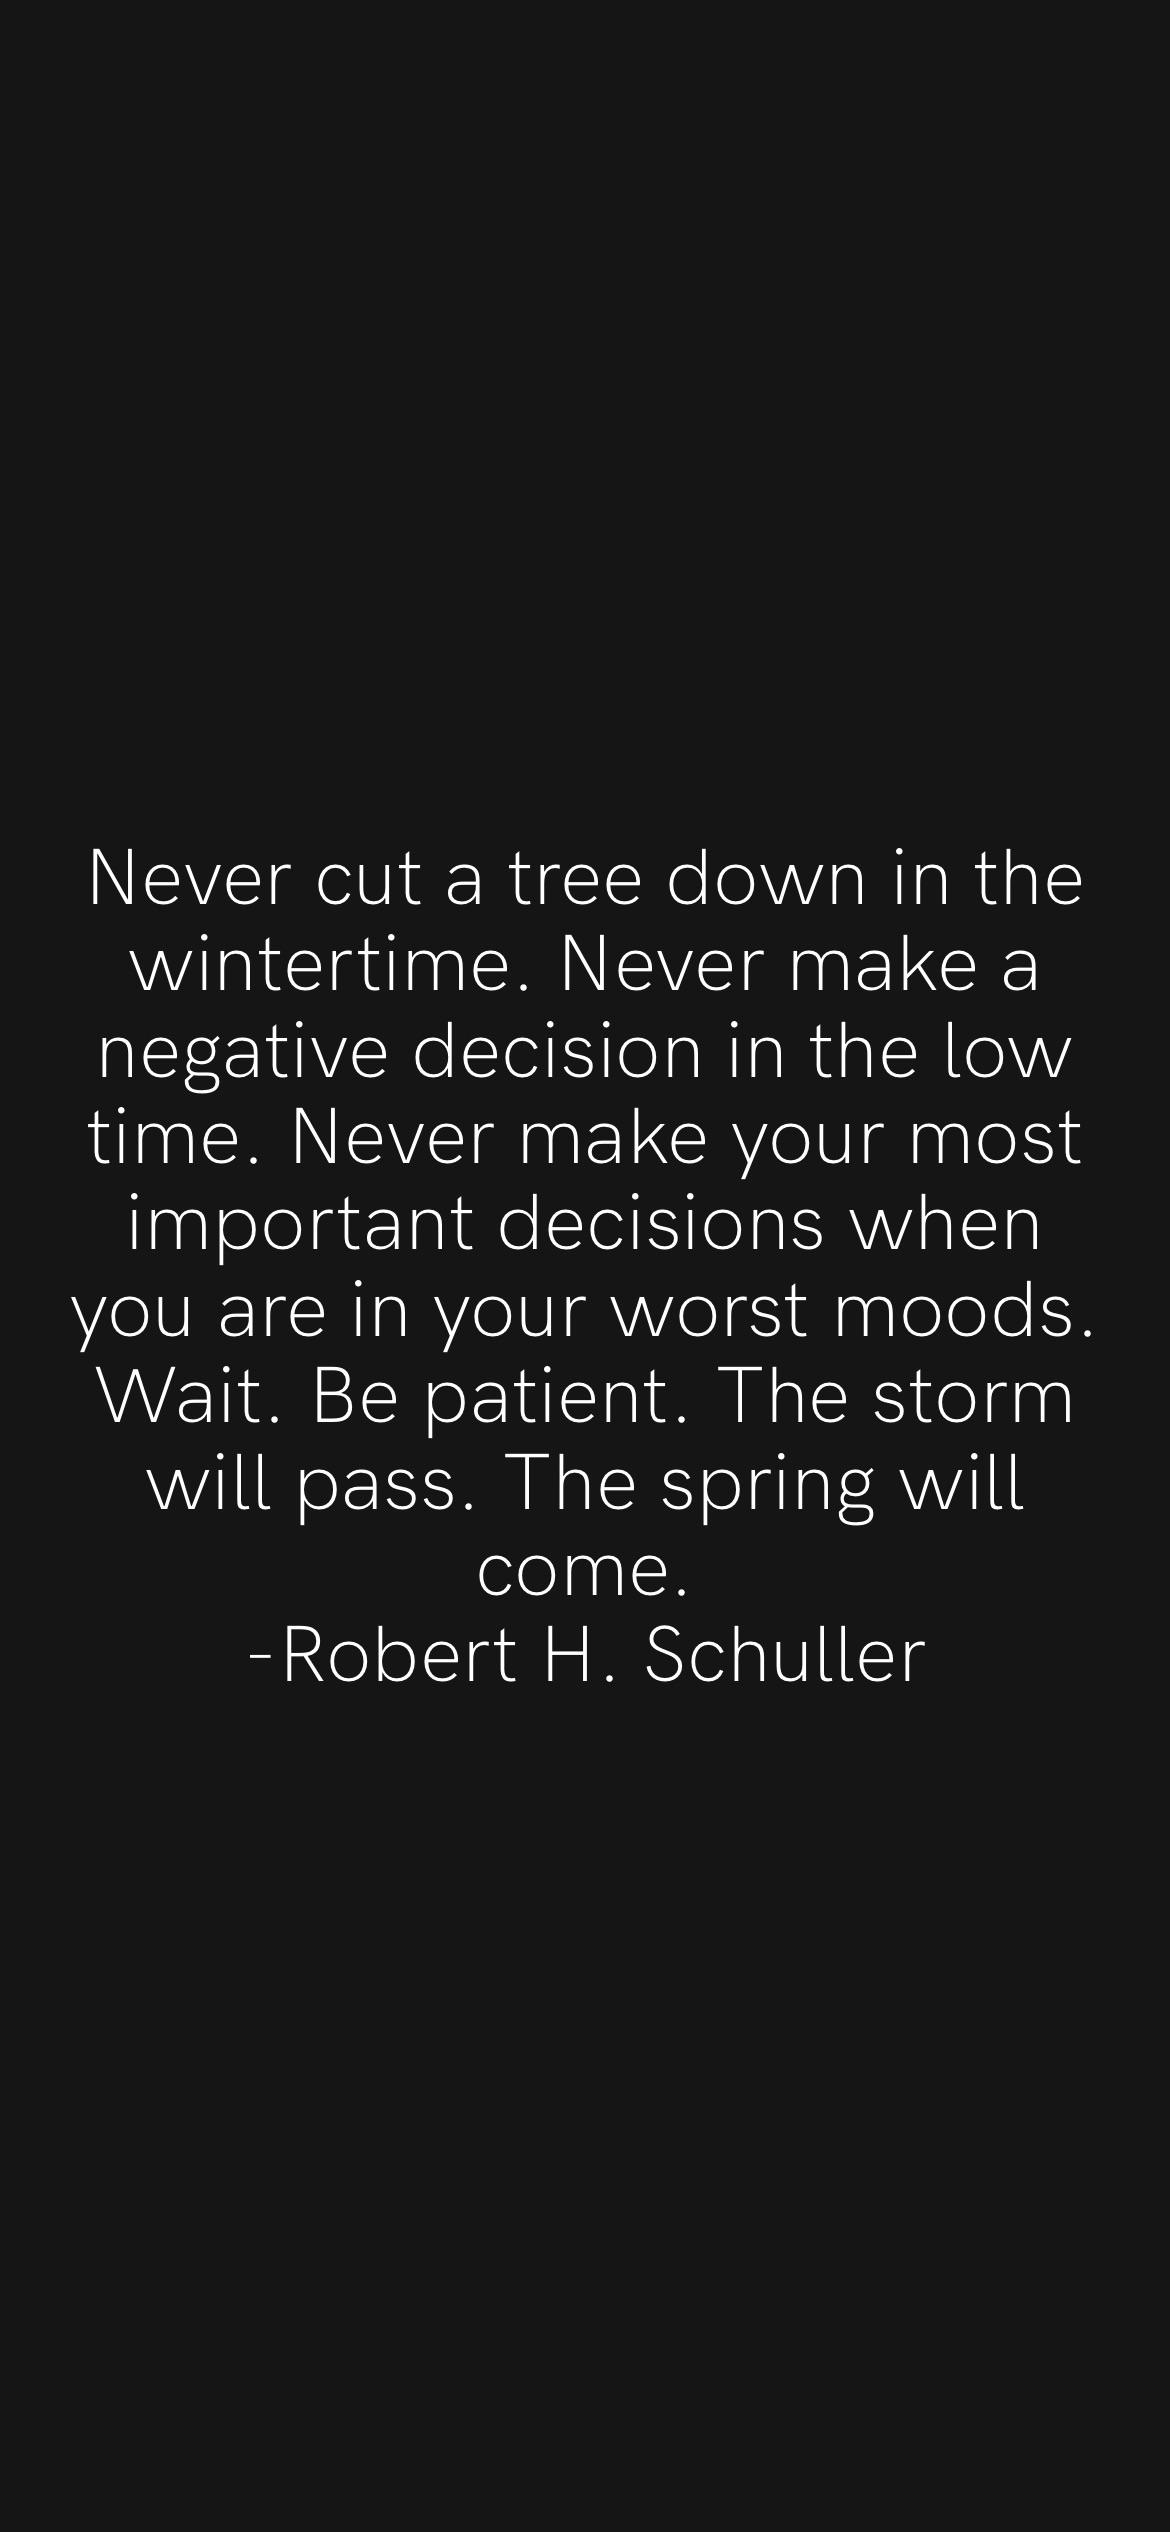 Never out a tree down in the wintertime. Never make a negative decision in the tow time. Never make your most important decisions when you are in your worst moods. Wait. Be patient. The storm vvitl pass. The spring vvilt come. -Robert H. Sohutter https://inspirational.ly